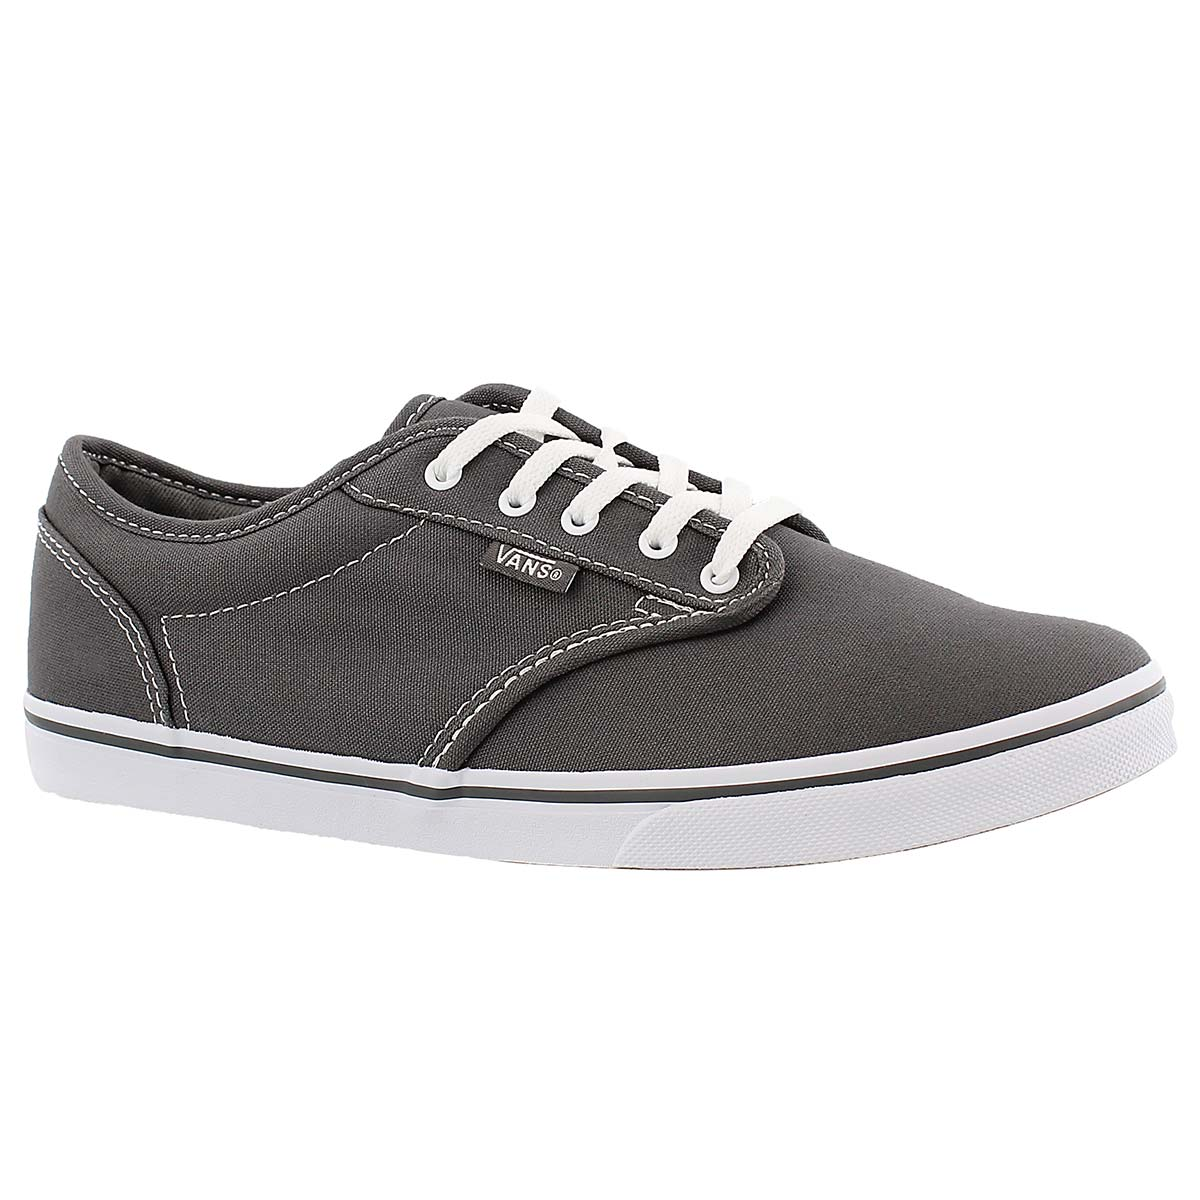 Lds Atwood Low pewter lace up sneaker